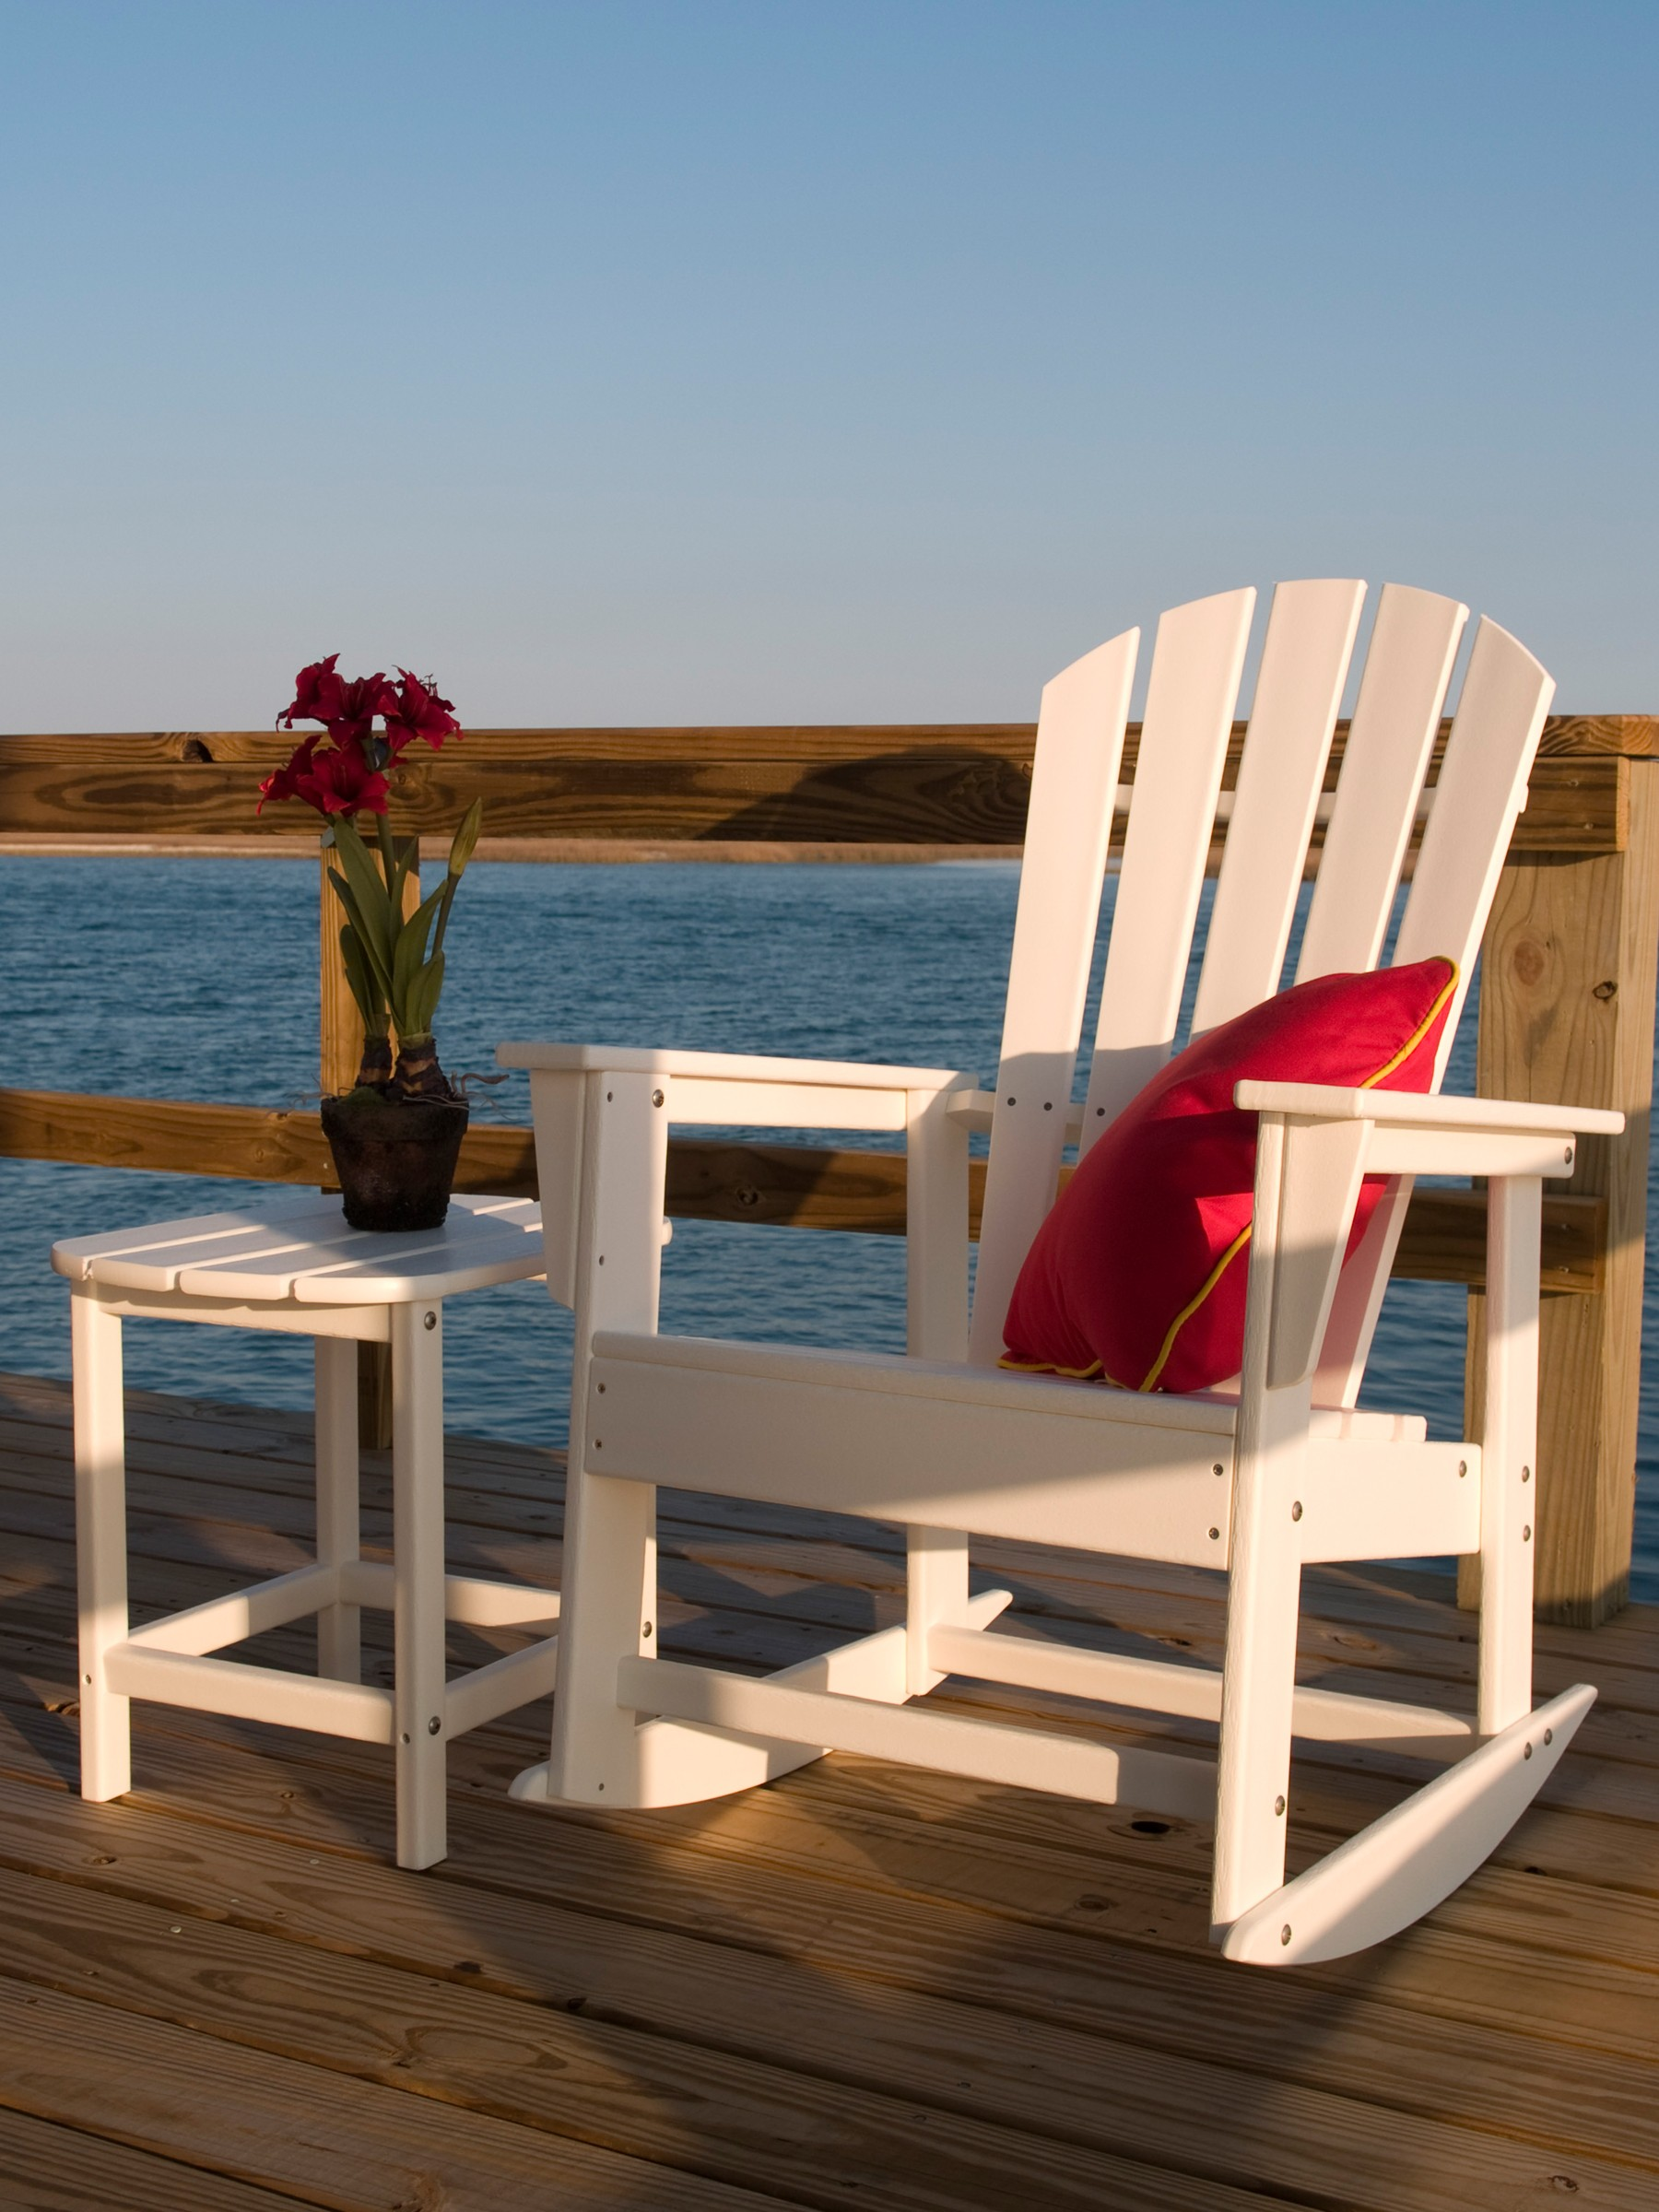 South Beach Adirondack rocking chair Adirondack rocker Polywood outdoor furniture dock chair